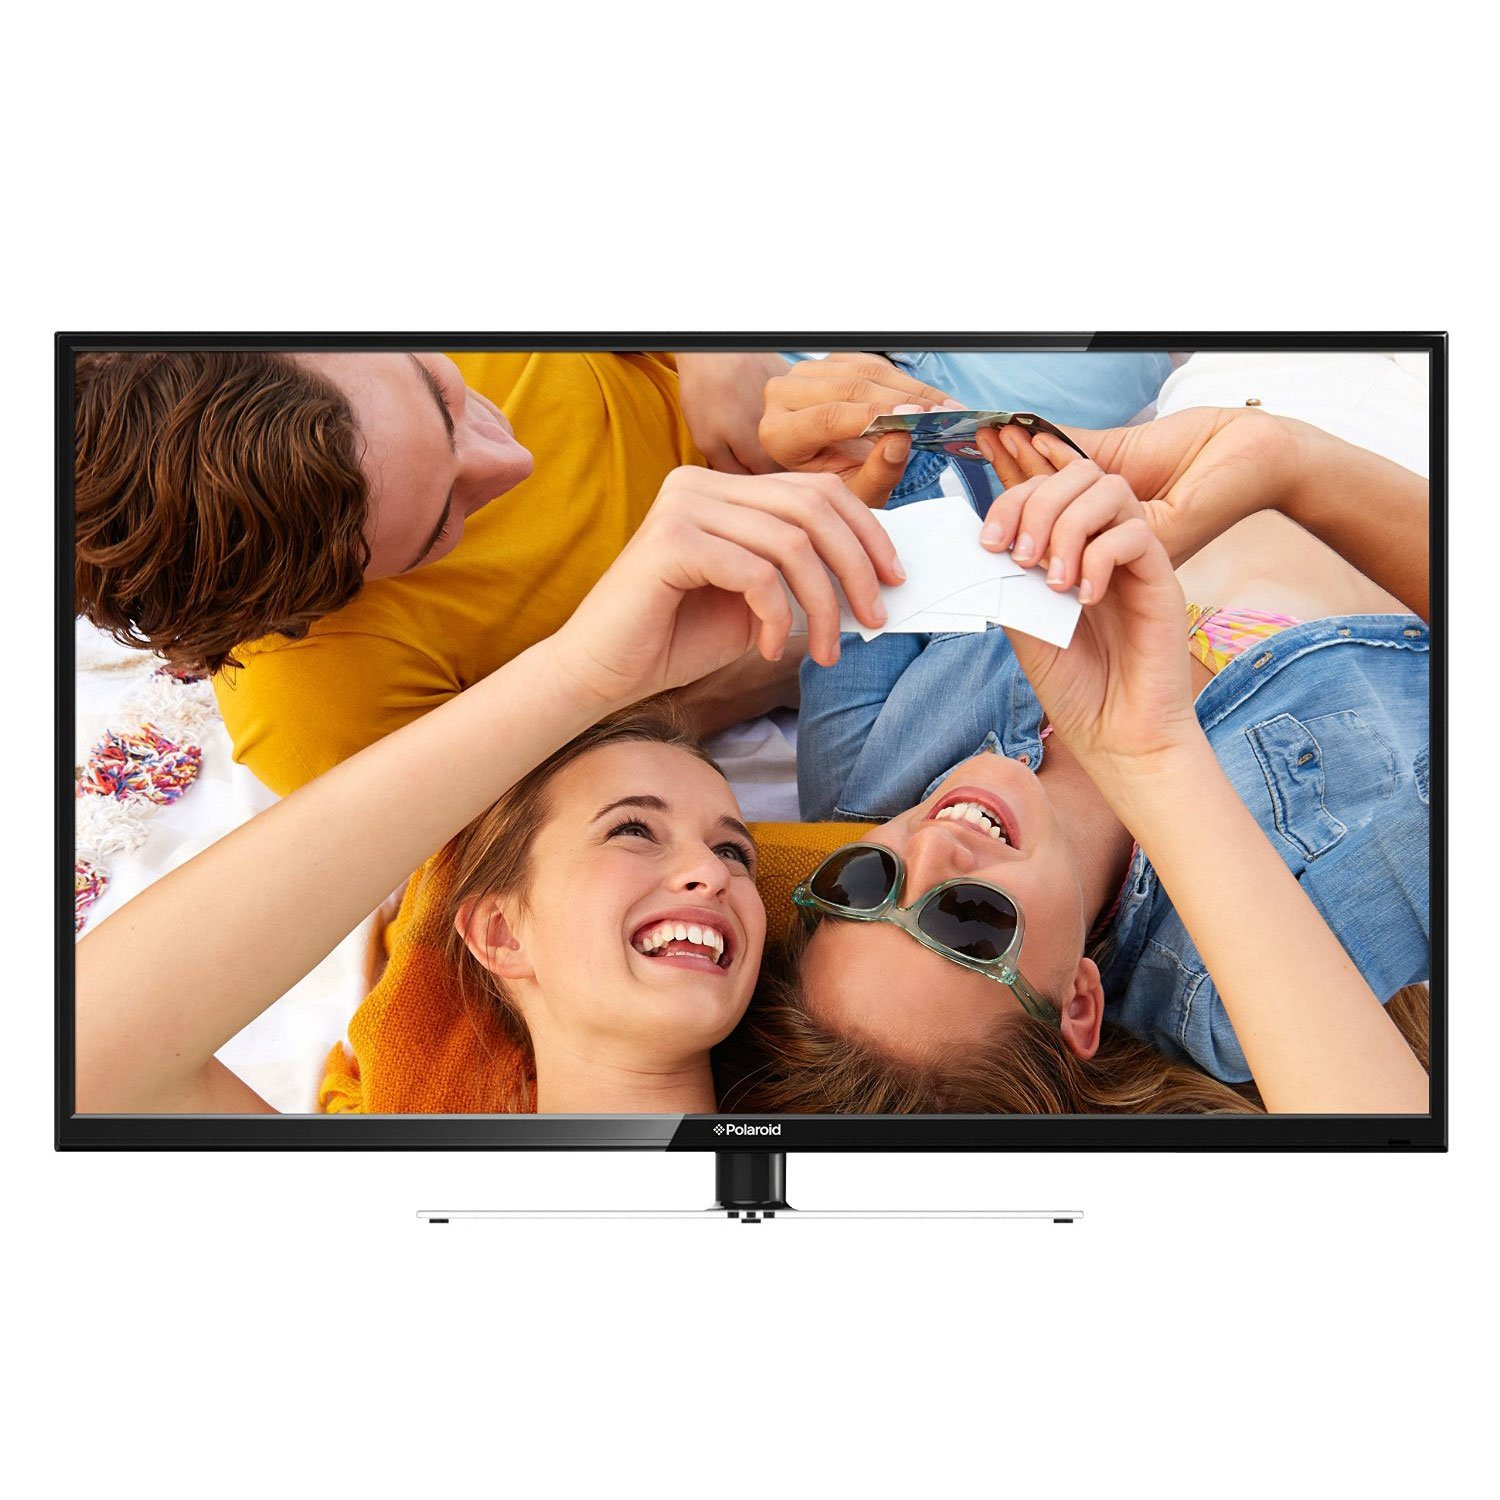 55 In. Widescreen 1080p 120Hz LED HDTV